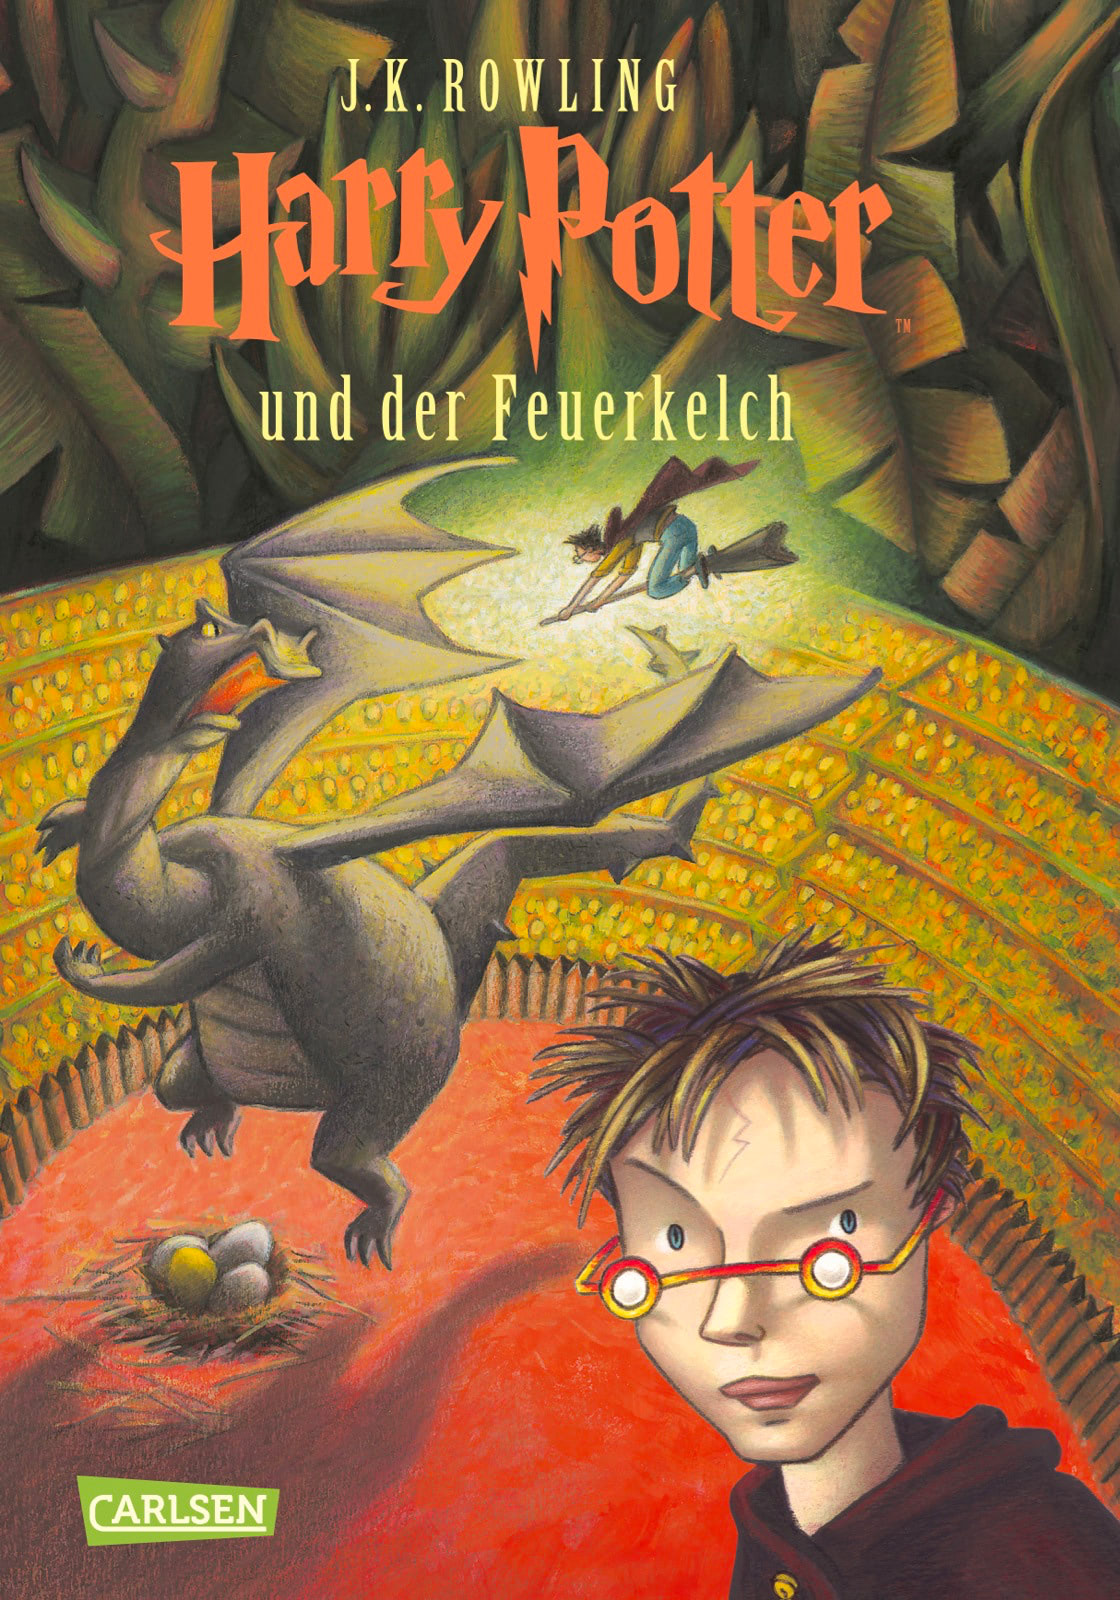 'Goblet of Fire' German edition